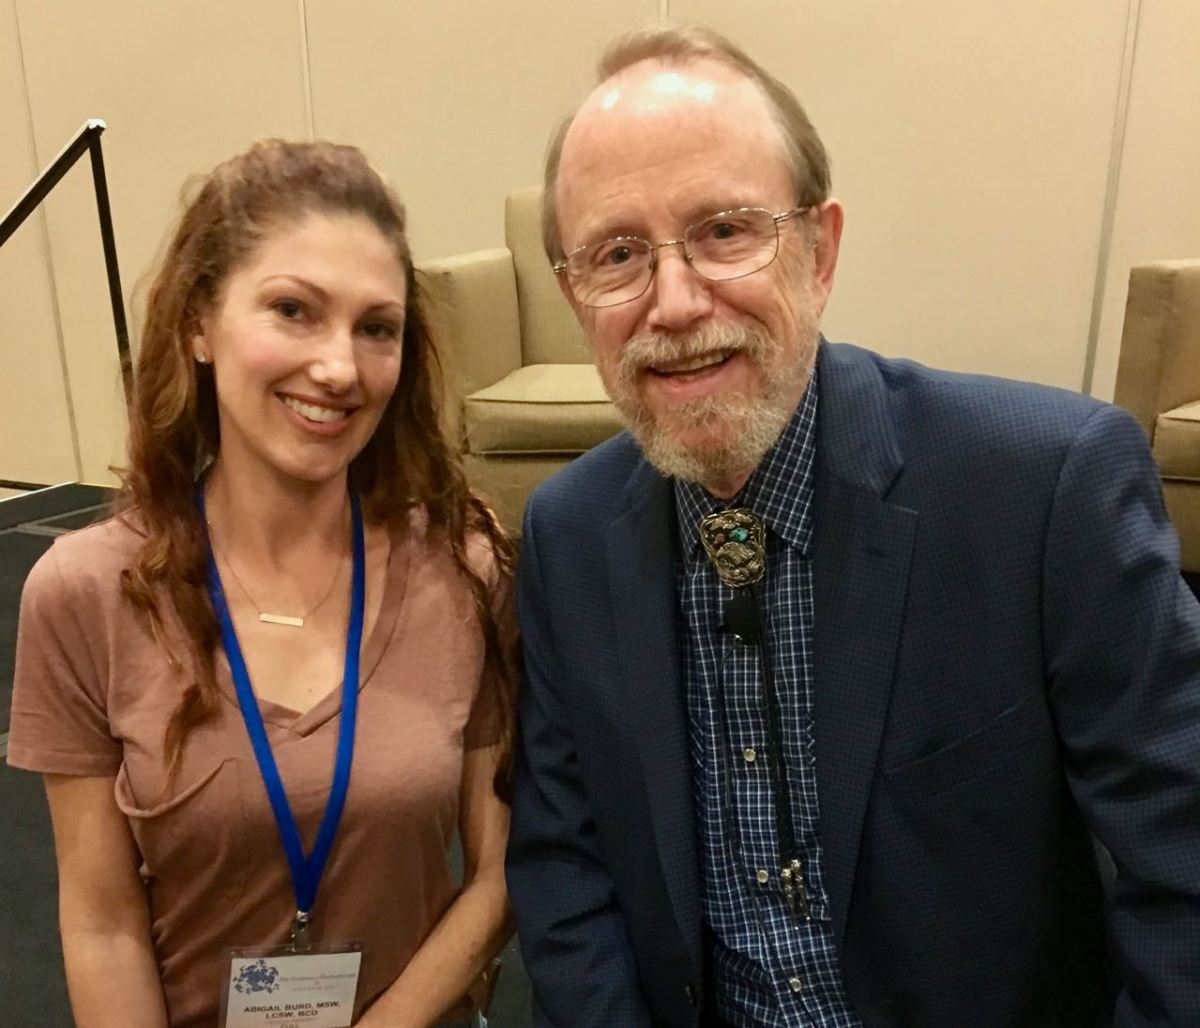 Founder of Motivational Interviewing, William Miller, PhD, and San Diego Psychotherapist Abigail Burd, LCSW, BCD